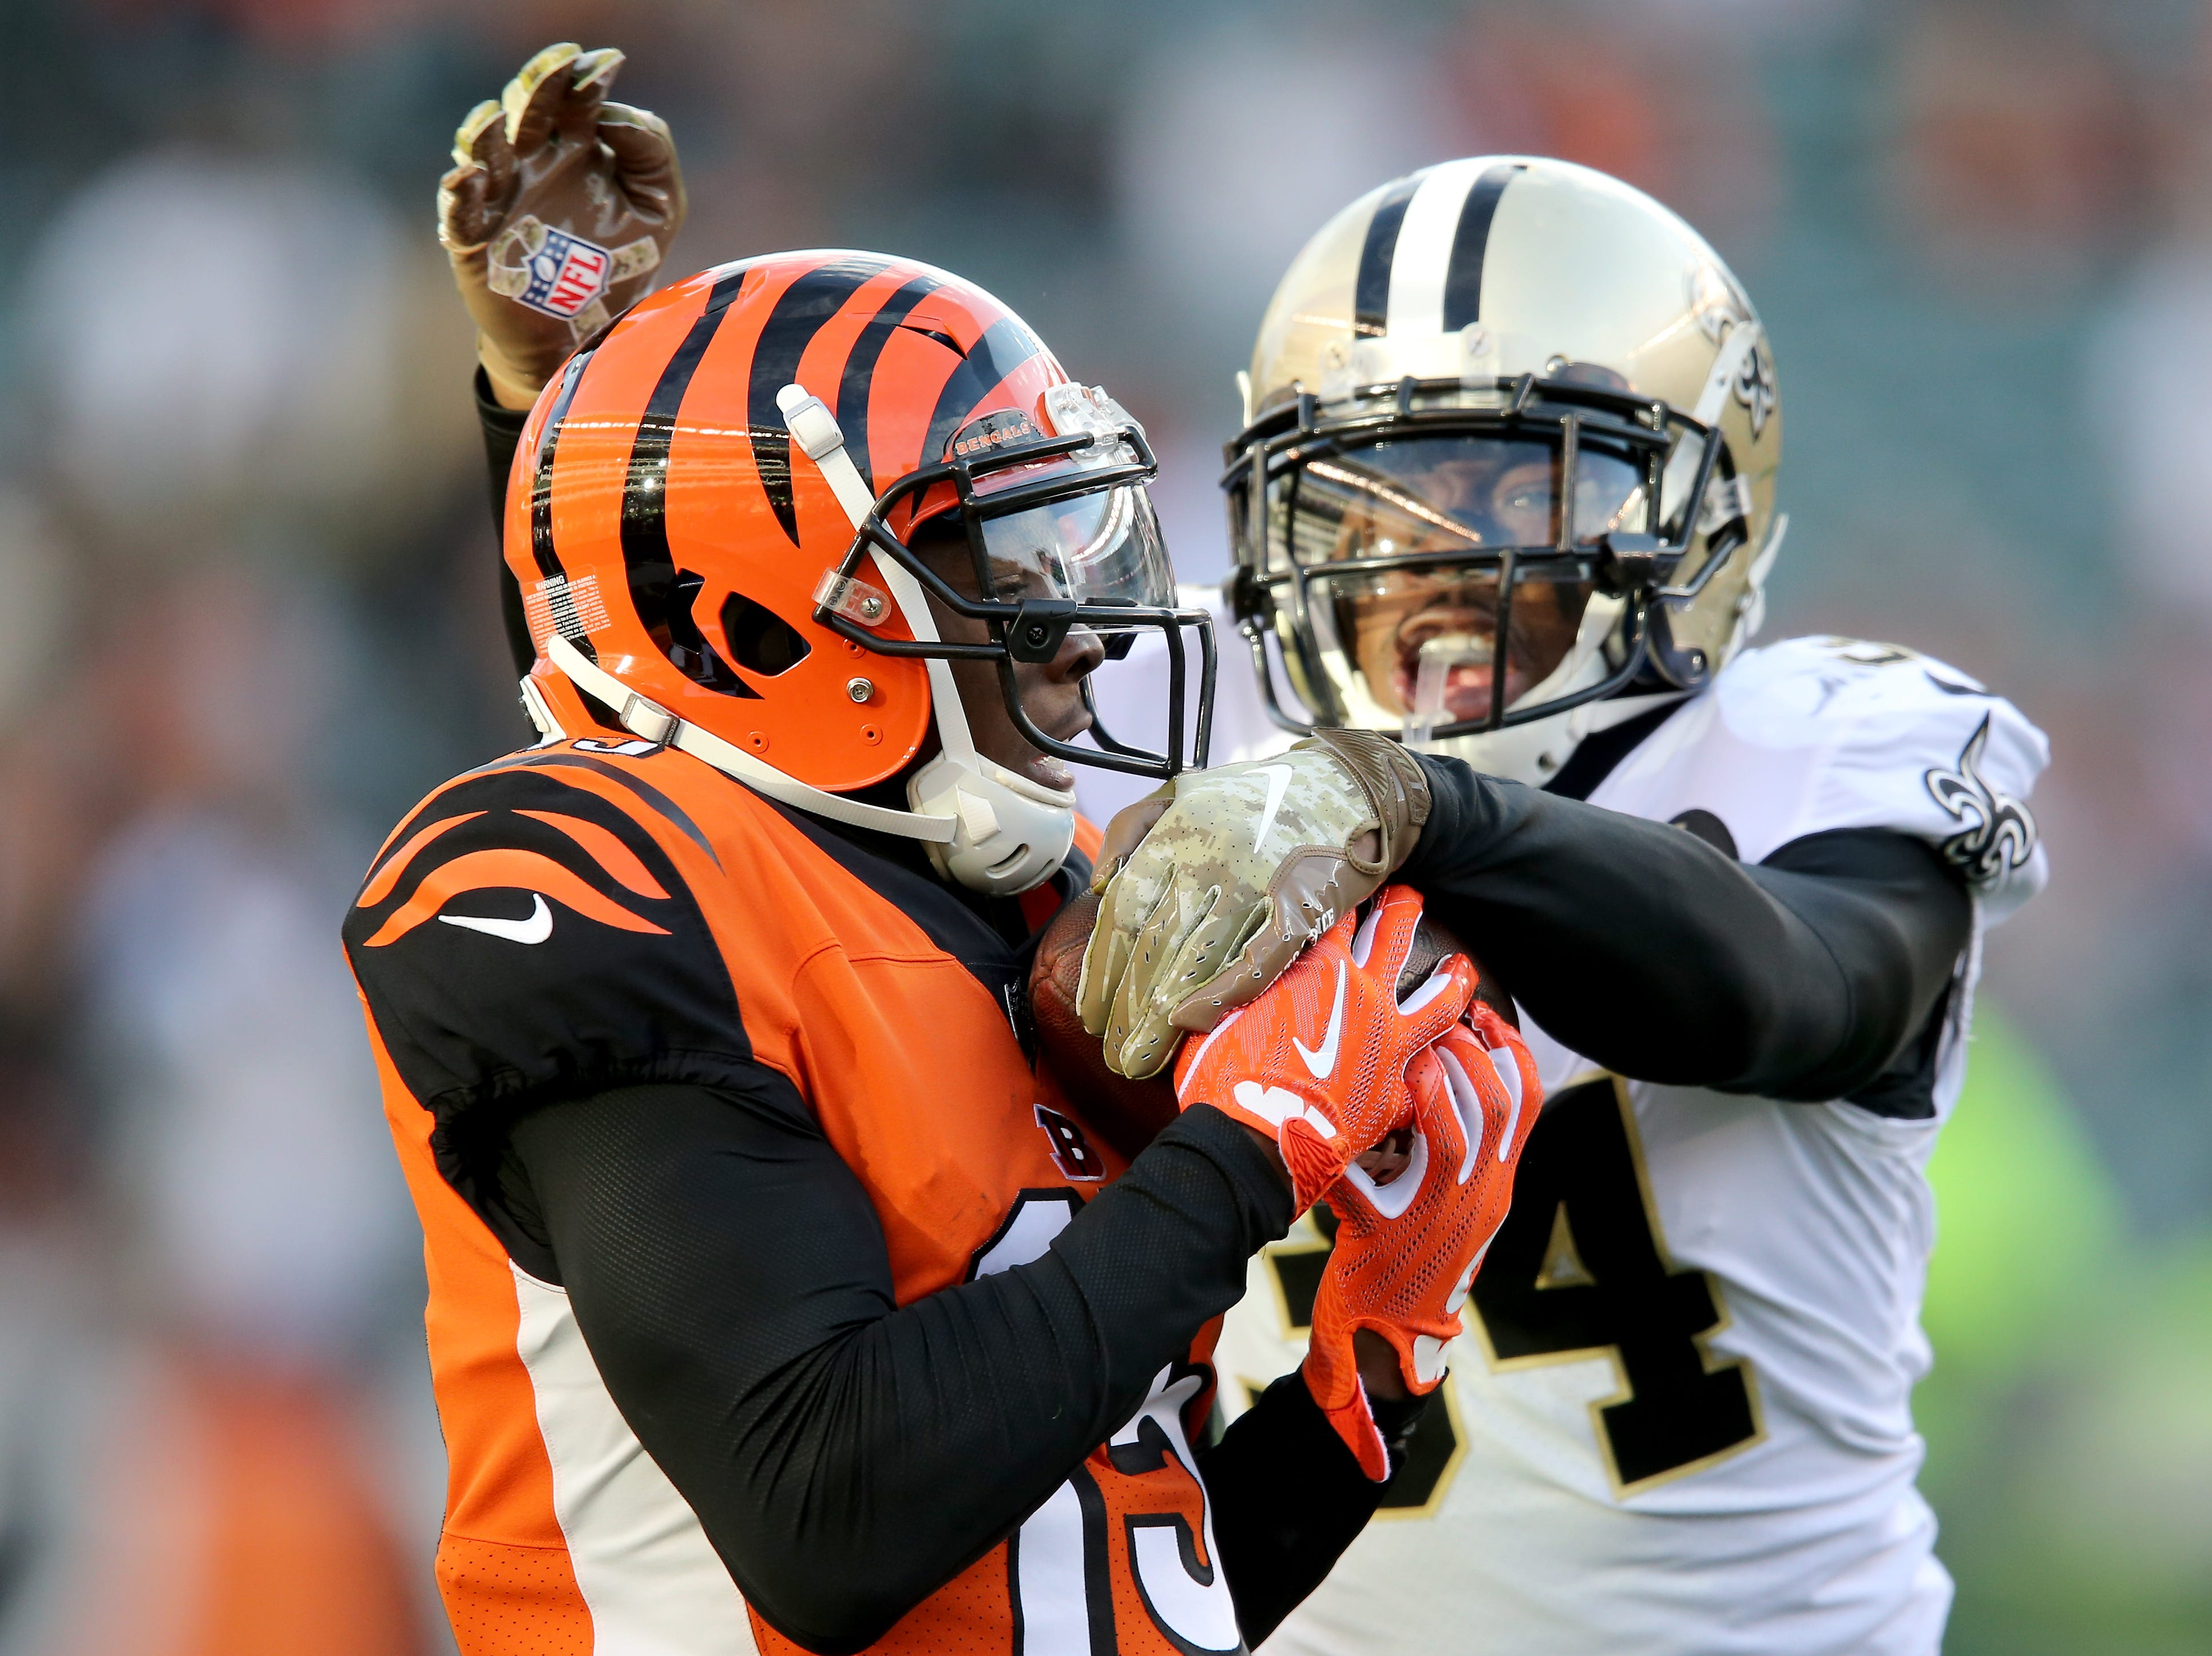 Cincinnati Bengals wide receiver John Ross (15) completes a long catch down the sideline in the fourth quarter of a Week 10 NFL game between the New Orleans Saints and the Cincinnati Bengals, Sunday, Nov. 11, 2018, at Paul Brown Stadium in Cincinnati. The New Orleans Saints won 51-14.